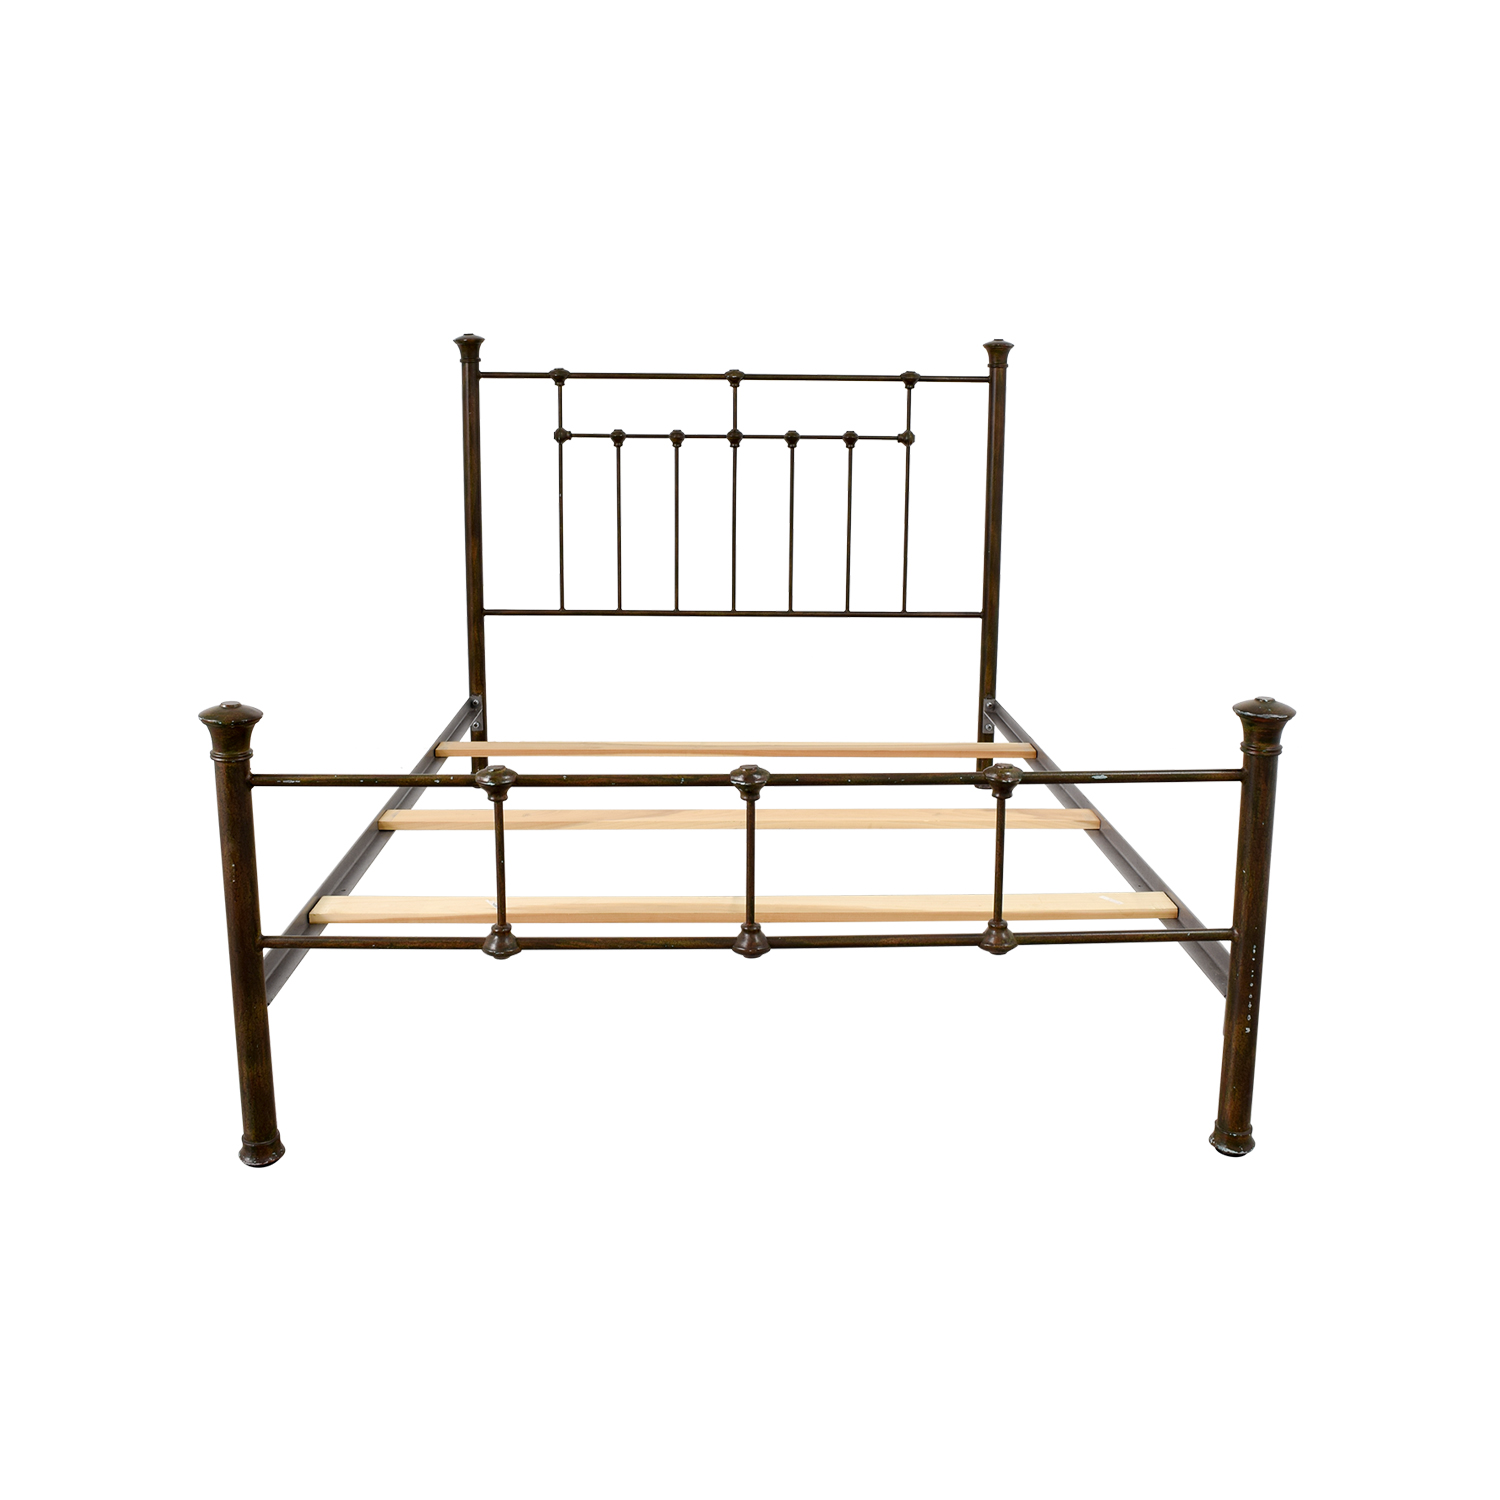 shop Pottery Barn Pottery Barn Queen Iron Bed Frame online